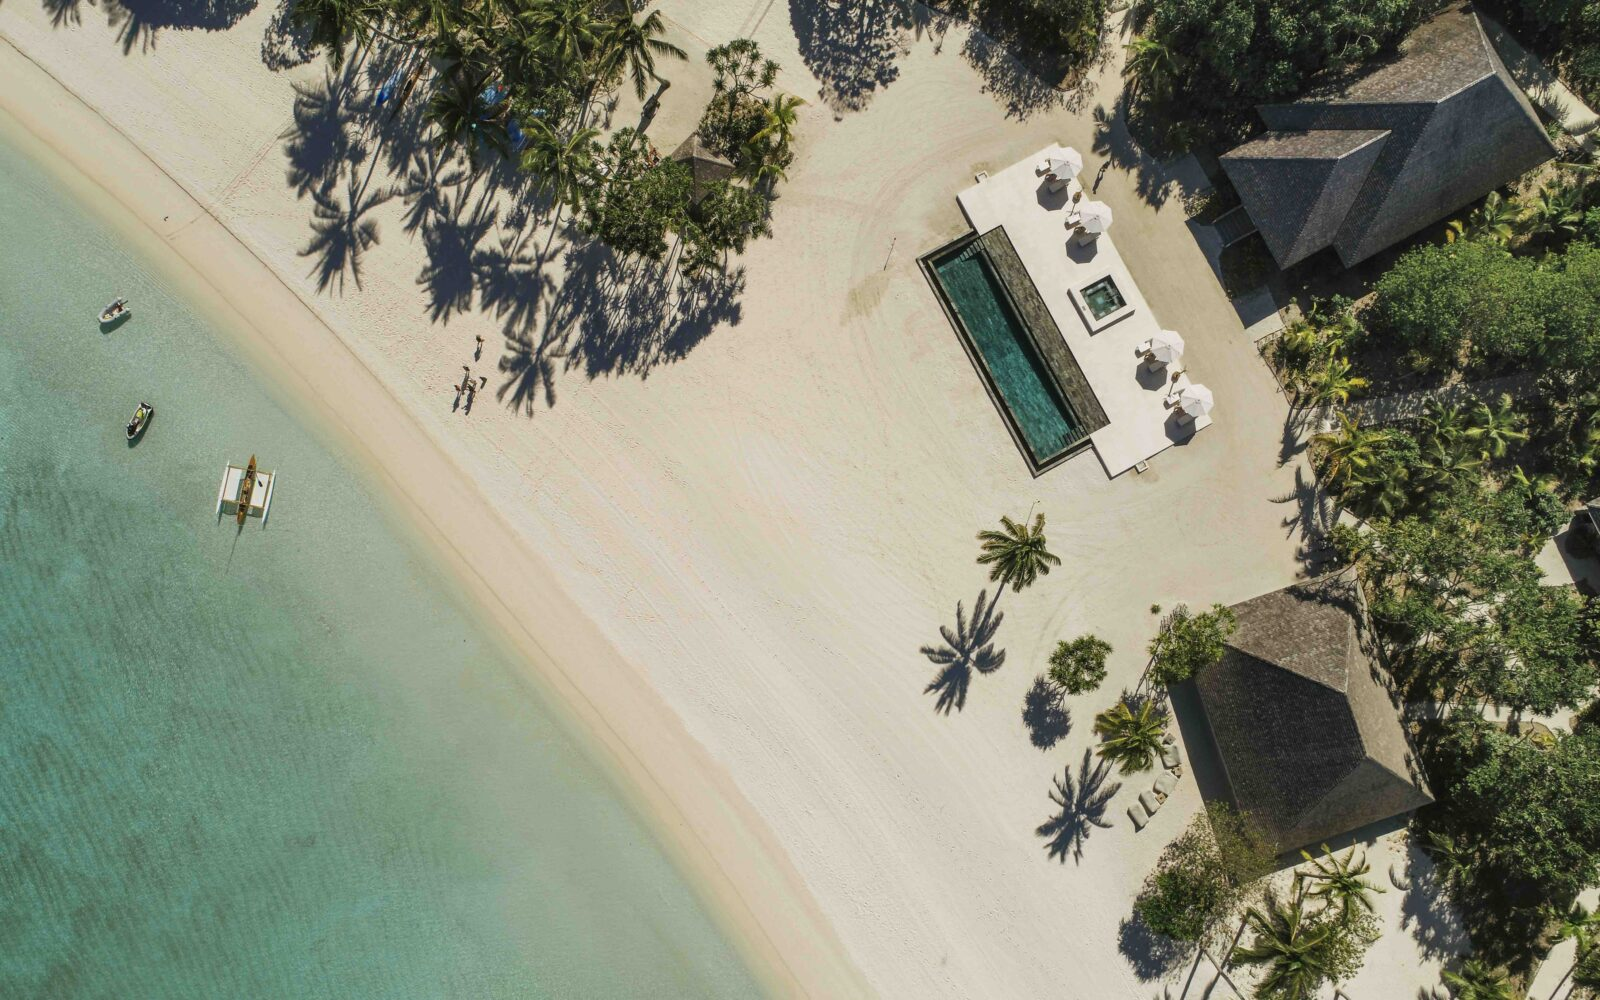 Airbnb Luxe launches this summer - stay at Nukutepipi villa in French Polynesia